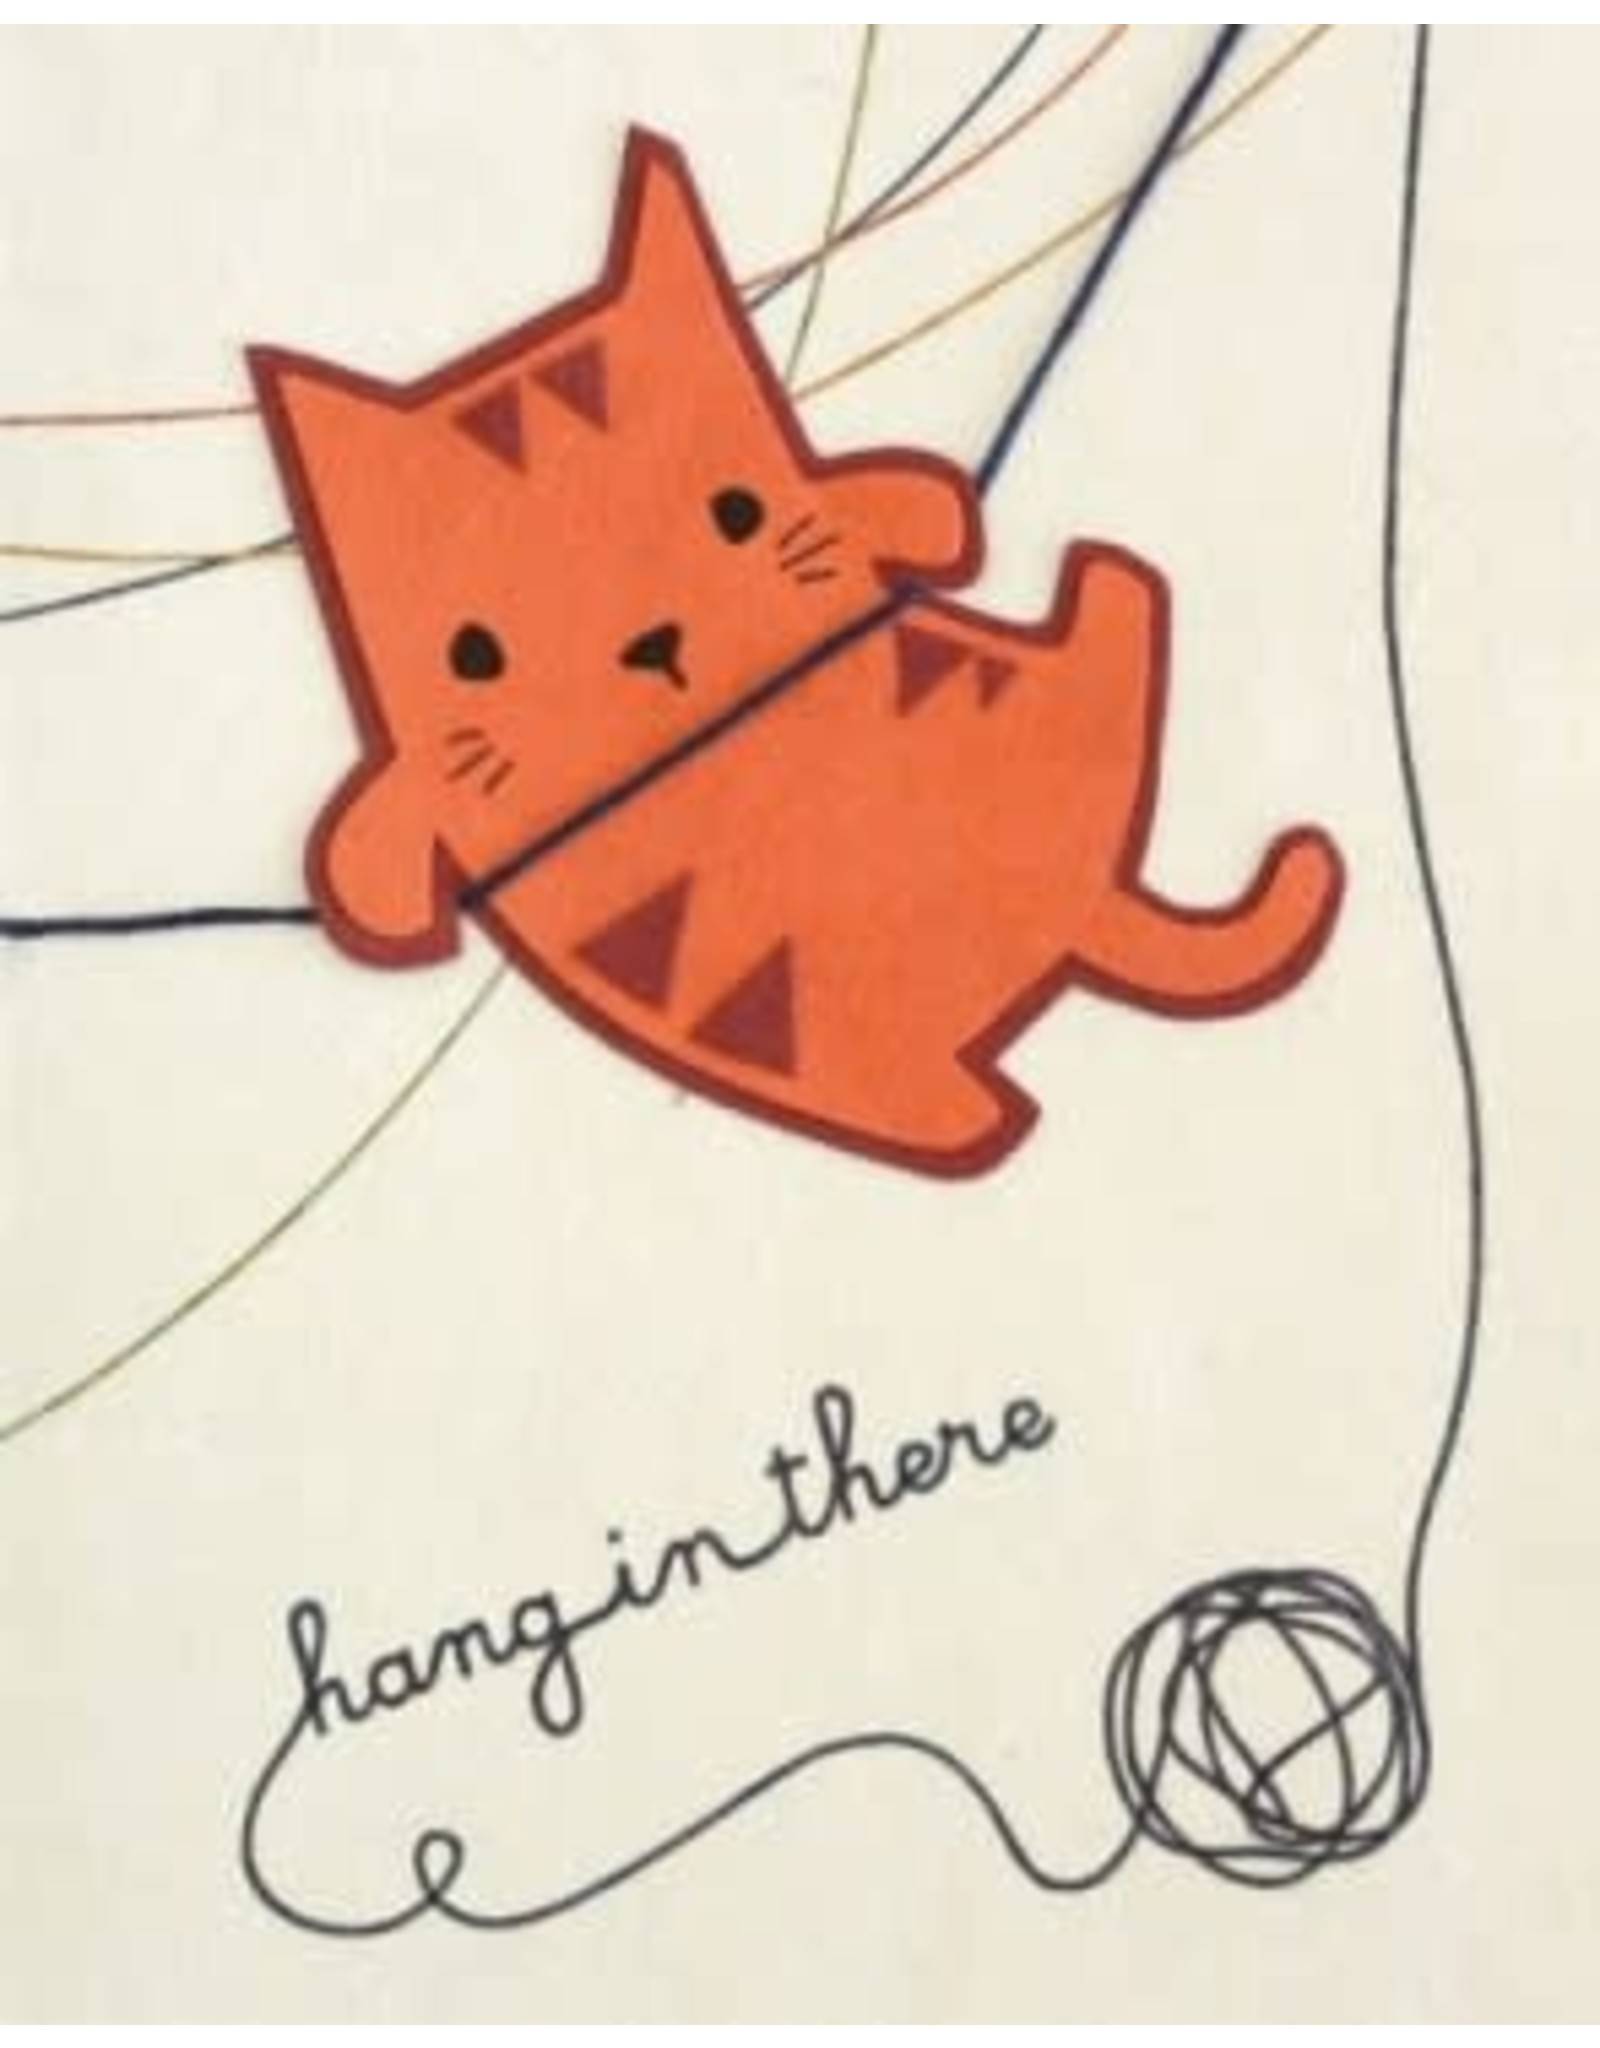 Hang in there Card Greeting Card